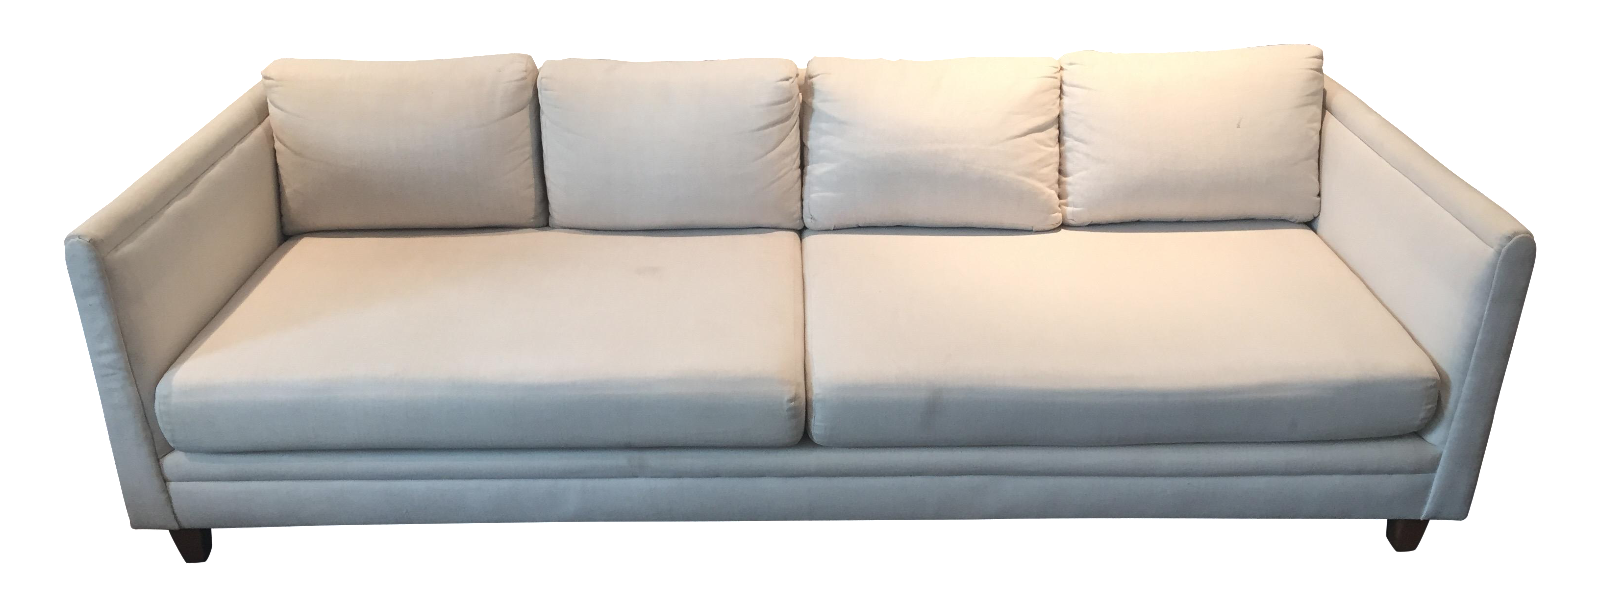 Baker Furniture Mid Century Off White Couch